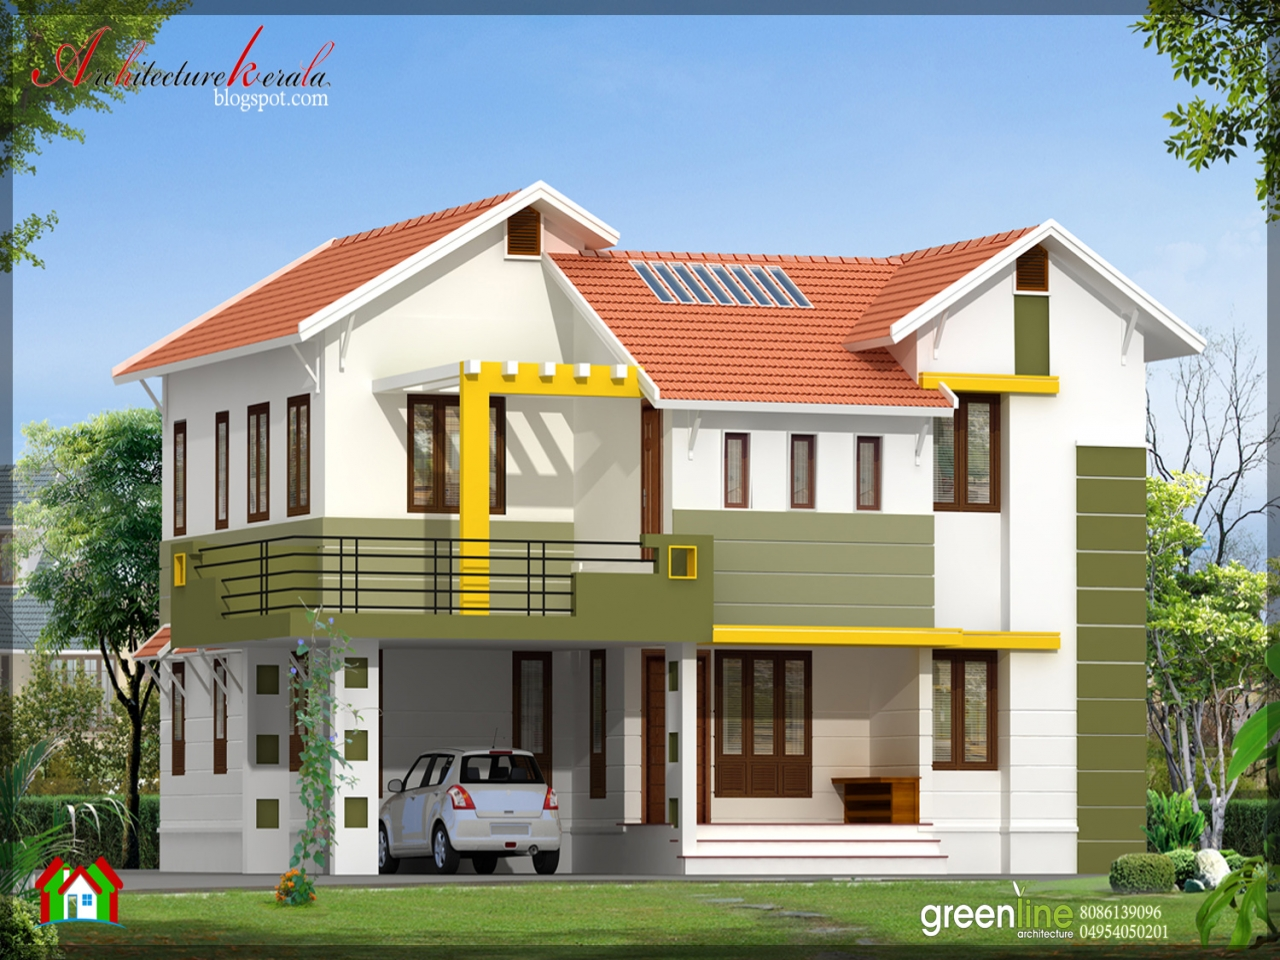 Simple Modern House Designs Simple House Design In India: simple house model design